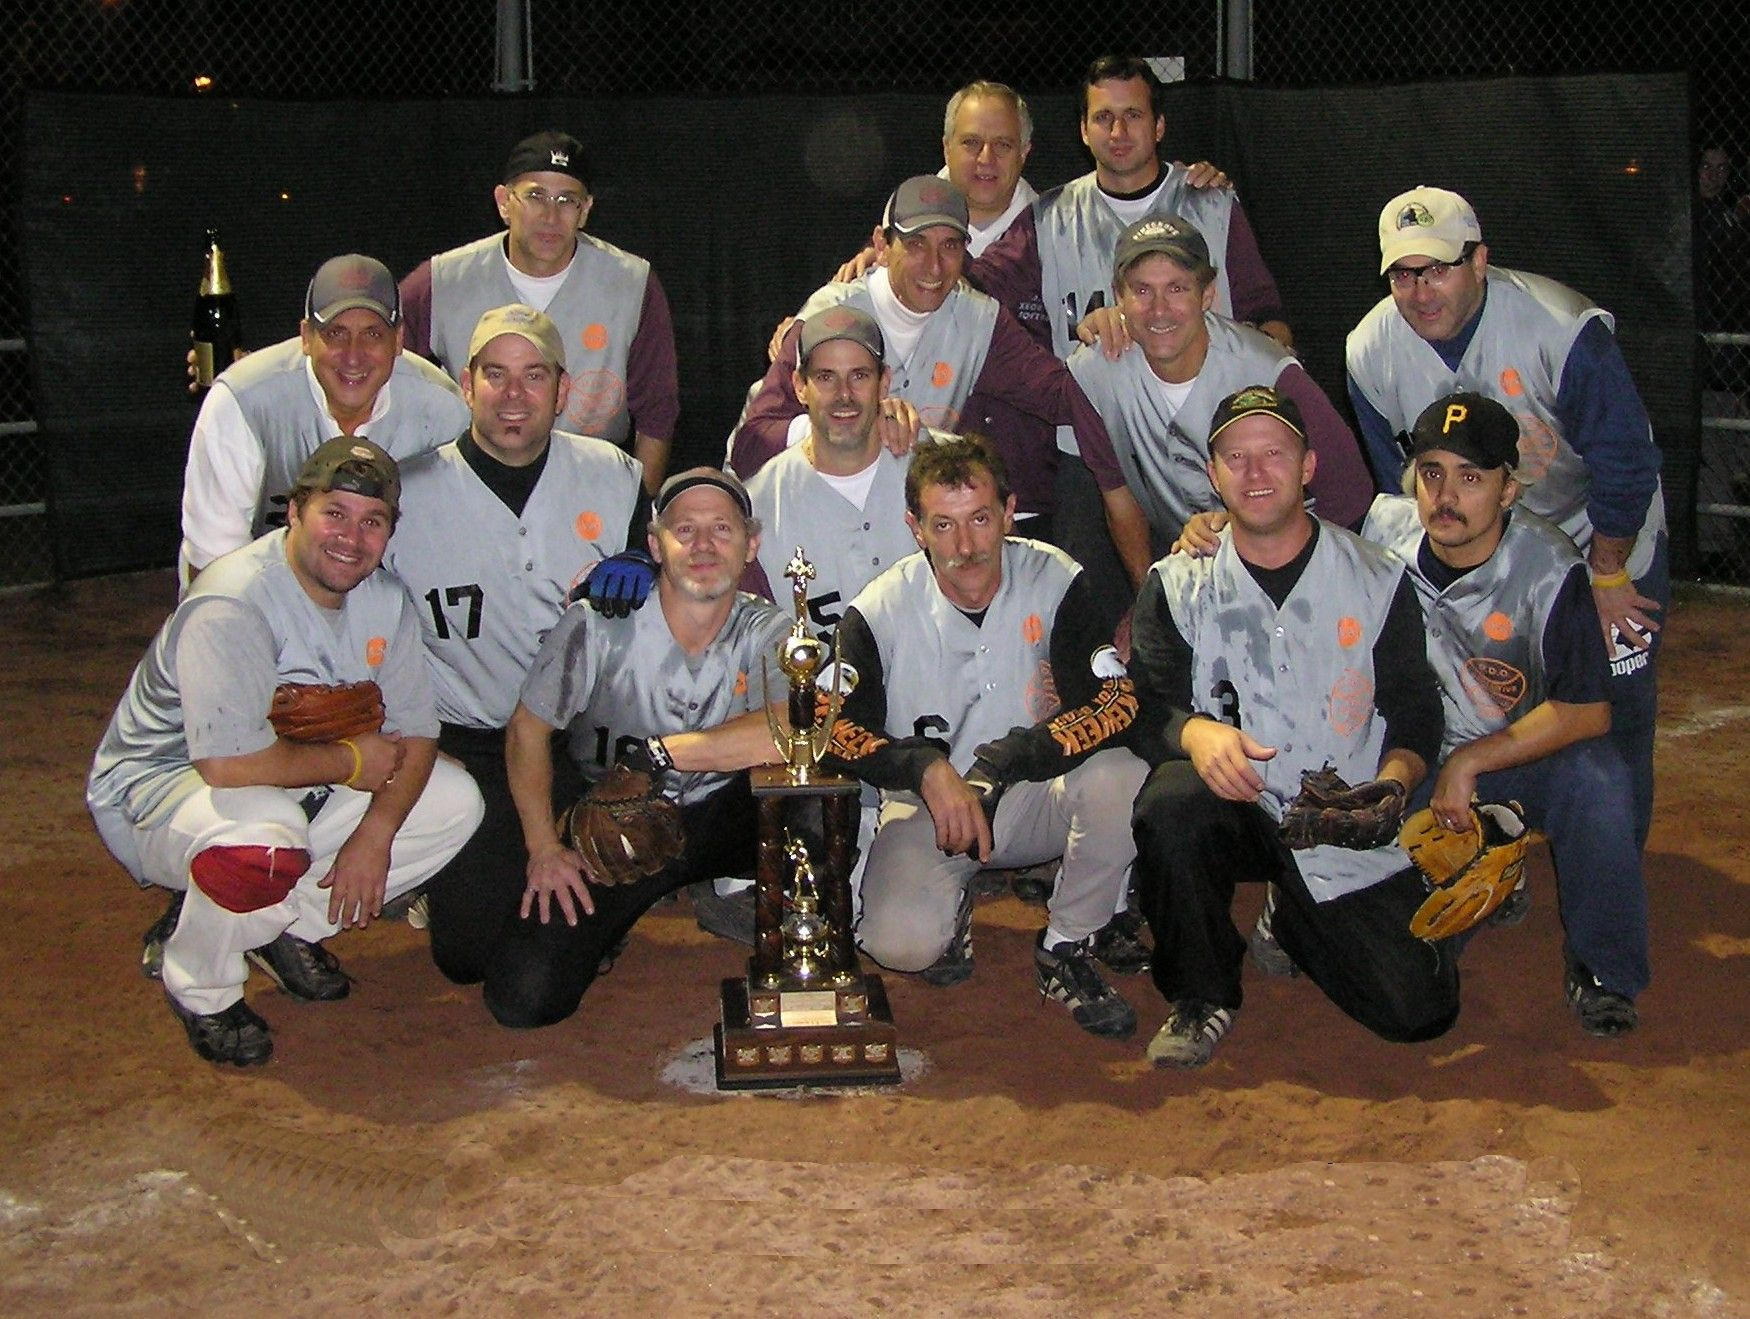 Abies - 2005 Champions